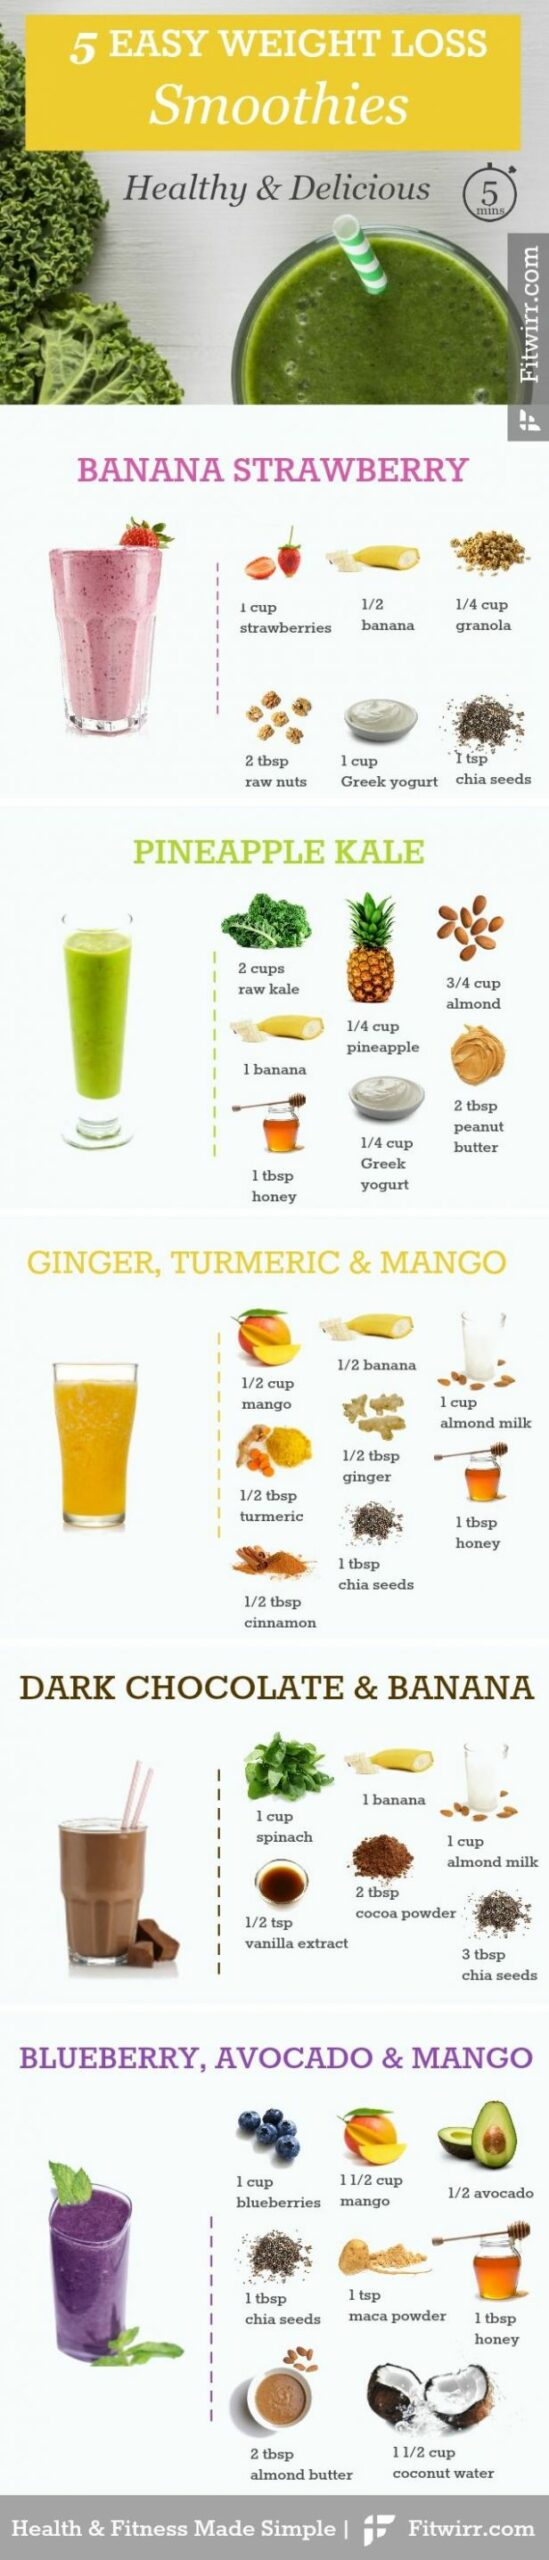 Pin auf Essen - Recipes For Weight Loss Green Smoothies